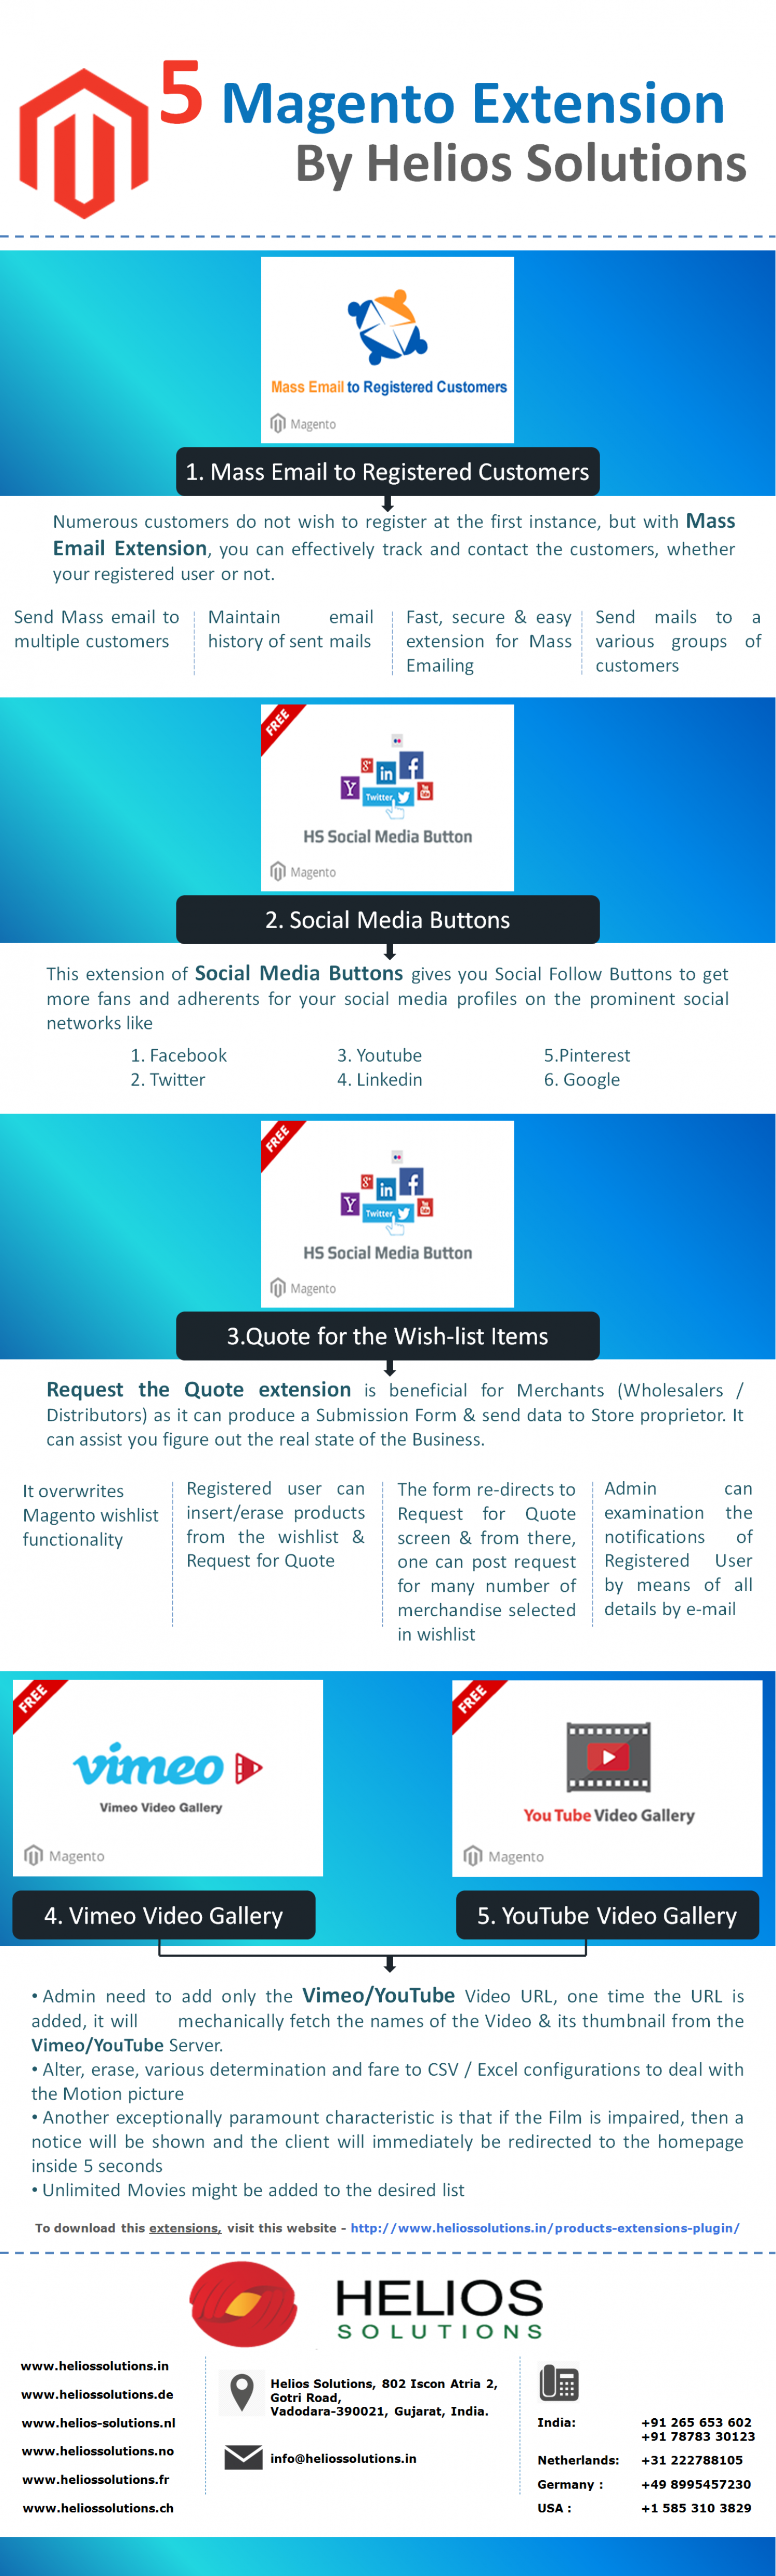 5 Magento Extension By Helios Solutions Infographic